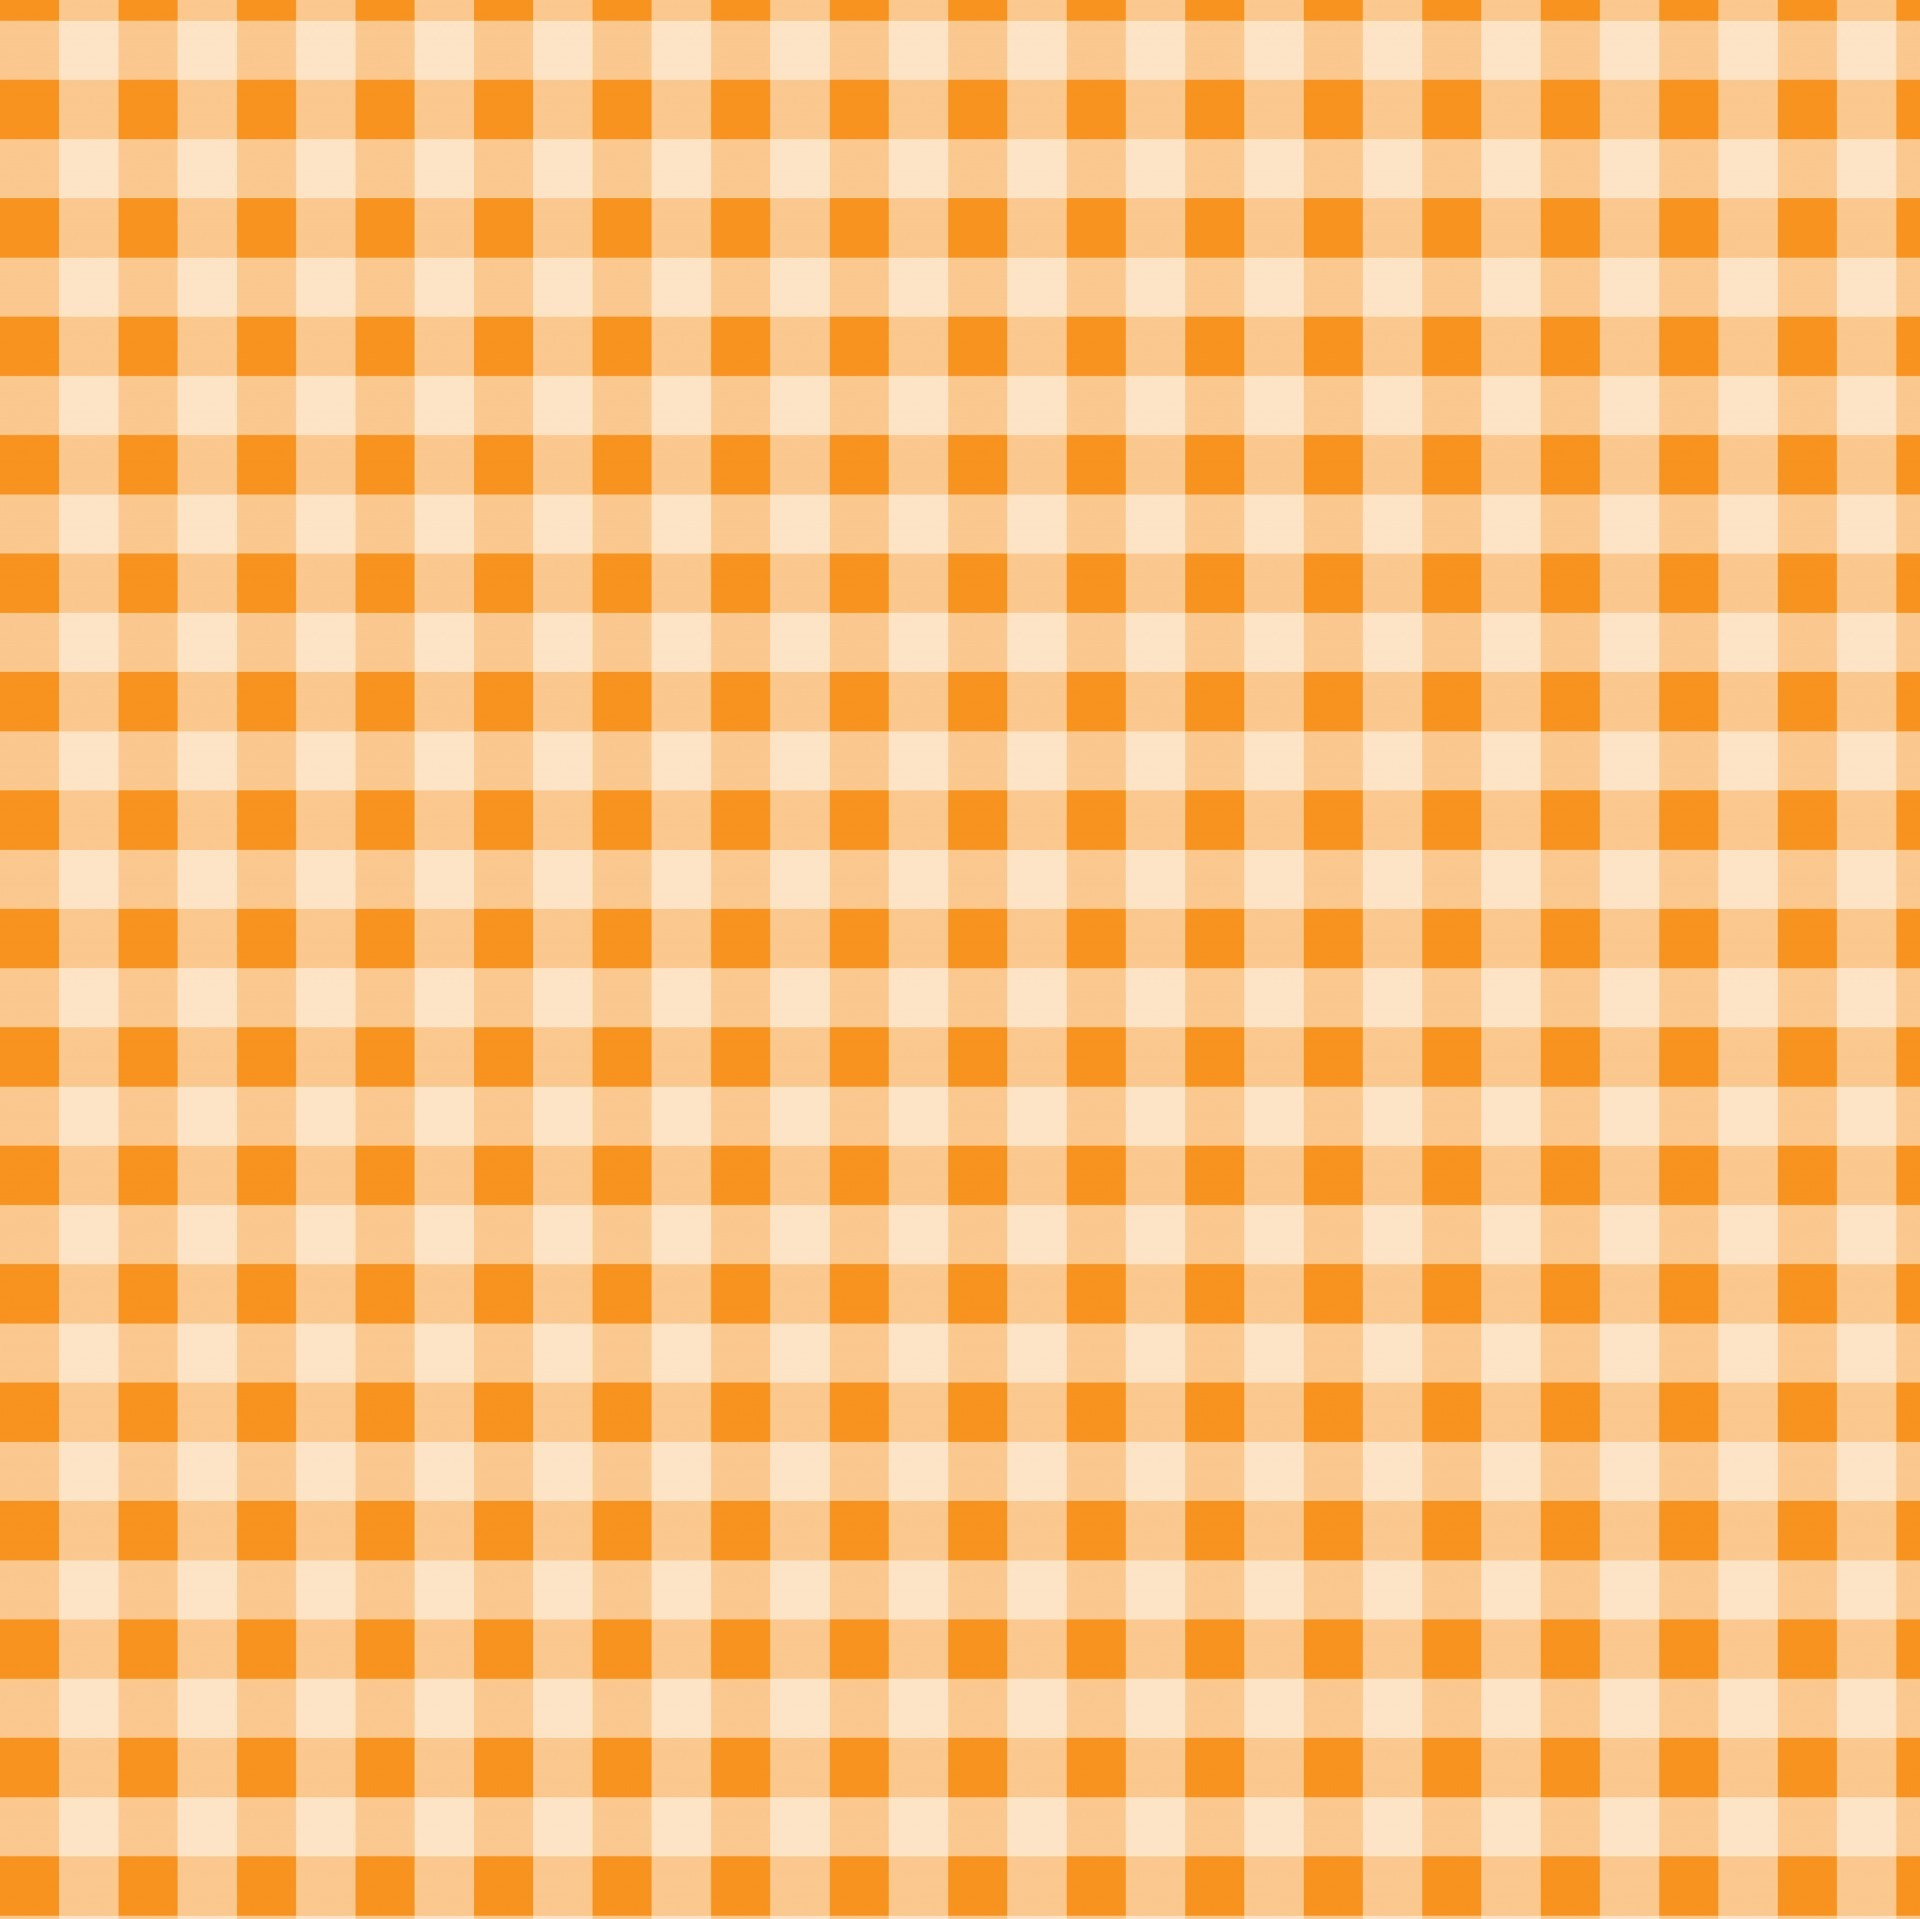 1920x1919 checks,checked,gingham,squares,orange,wallpaper,background,paper,